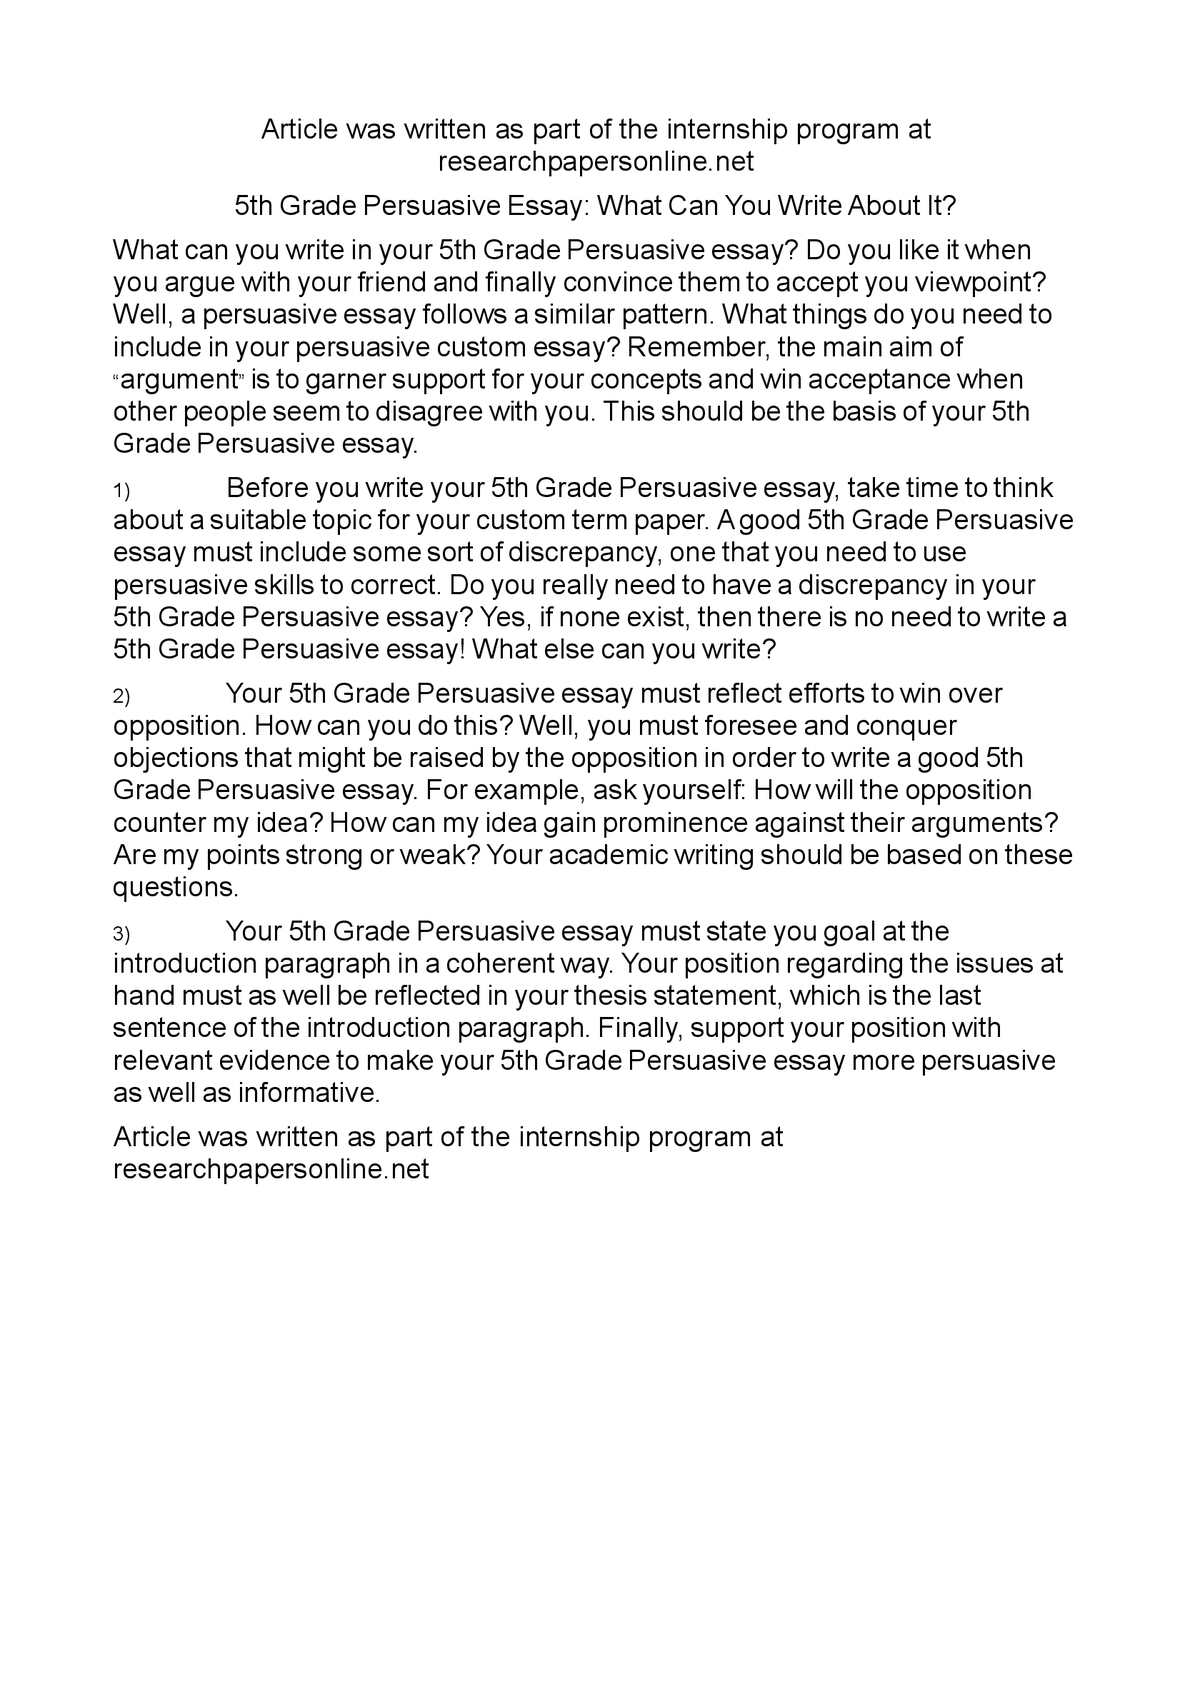 005 Persuasive Essay Writing For 5th Grade Example Impressive Essays Written By Fifth Graders A Prompts Full